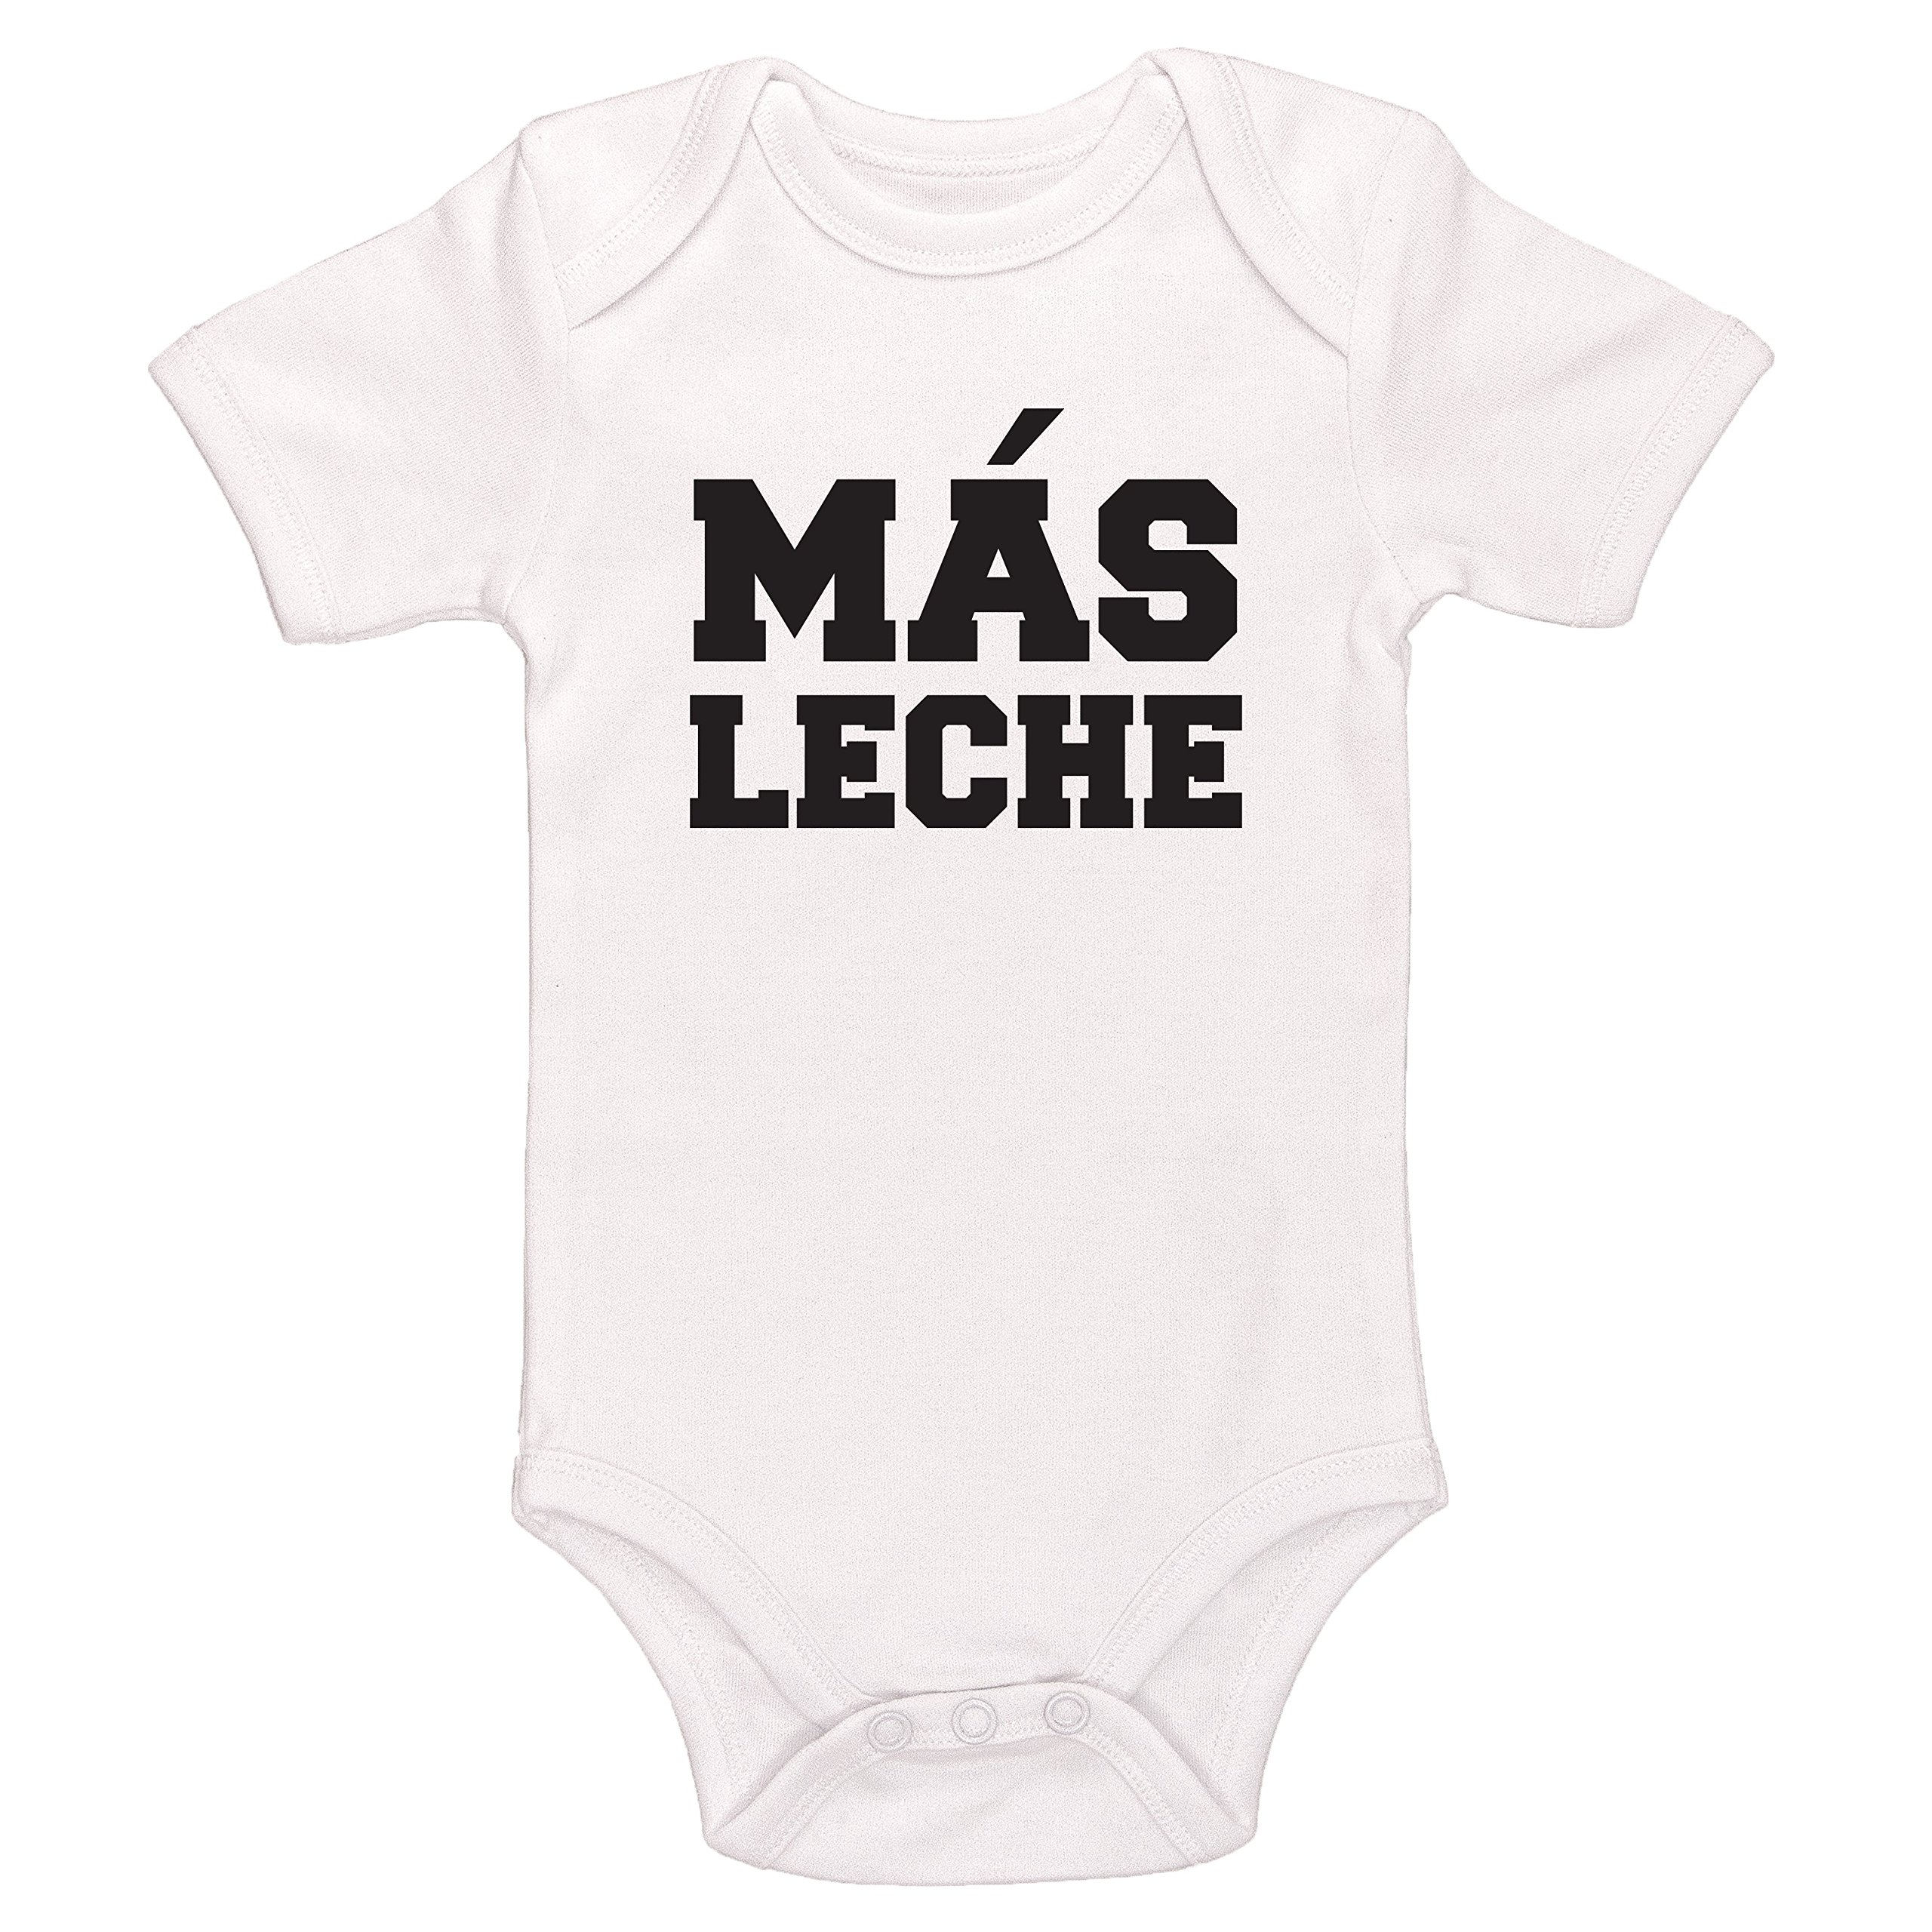 Kinacle Mas Leche Baby Bodysuit (3-6 Months, White)